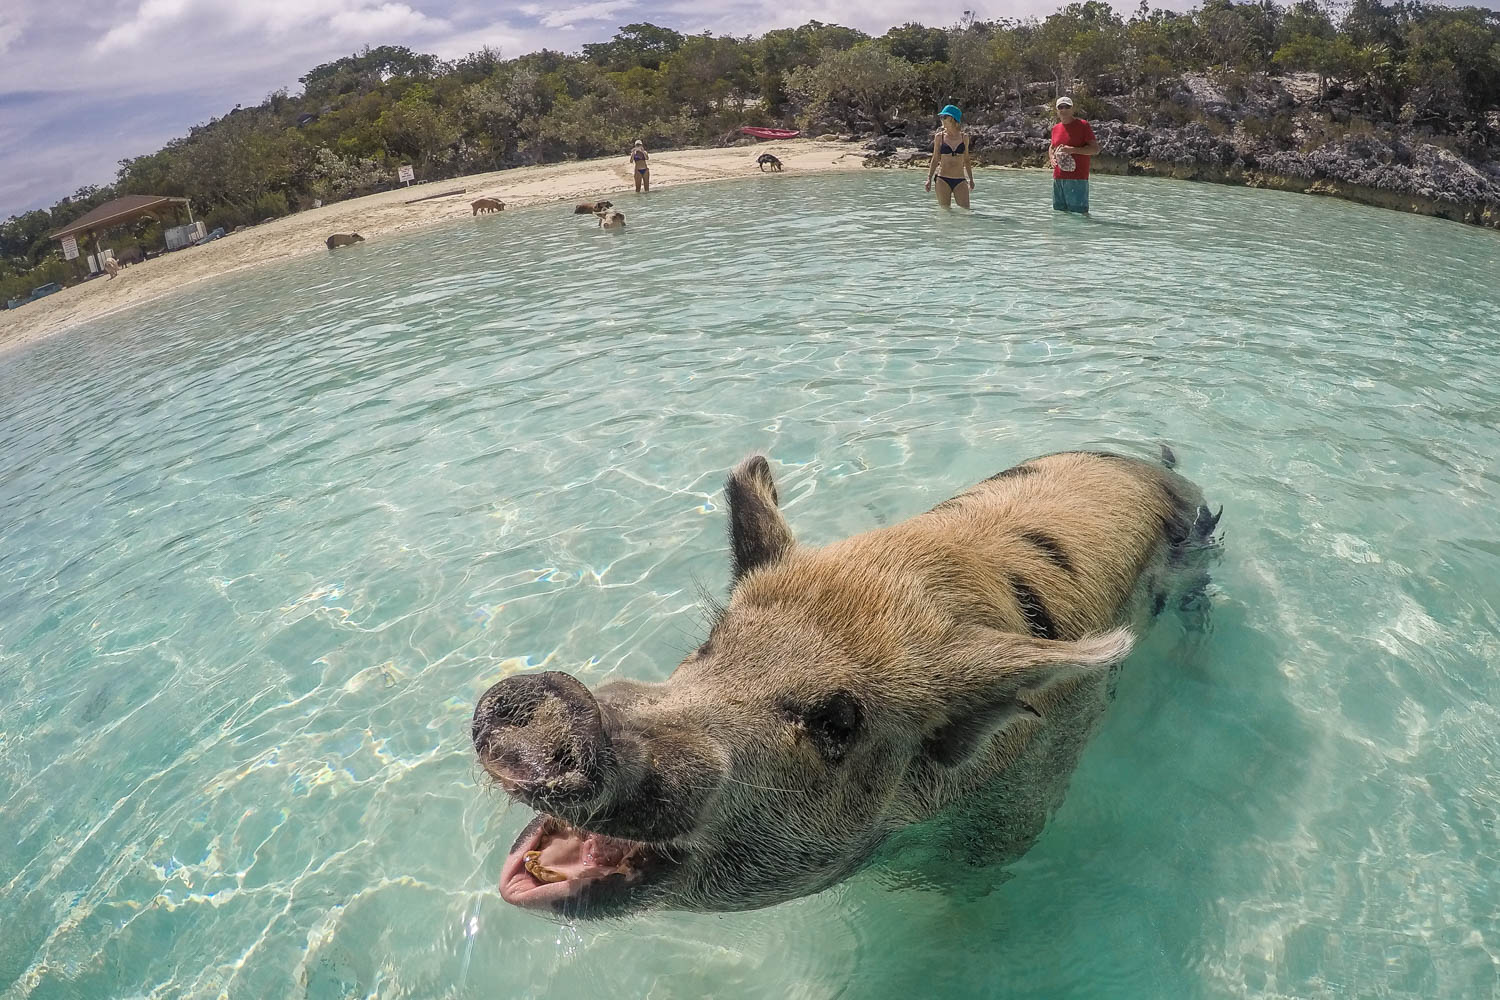 You can play with Exuma pigs on a Pig Island Tour. Pig Beach Bahamas is only ten minutes from Staniel Cay on Exuma tours. A Pig Island from Nassau Bahamas tour is one of the most popular things to do.